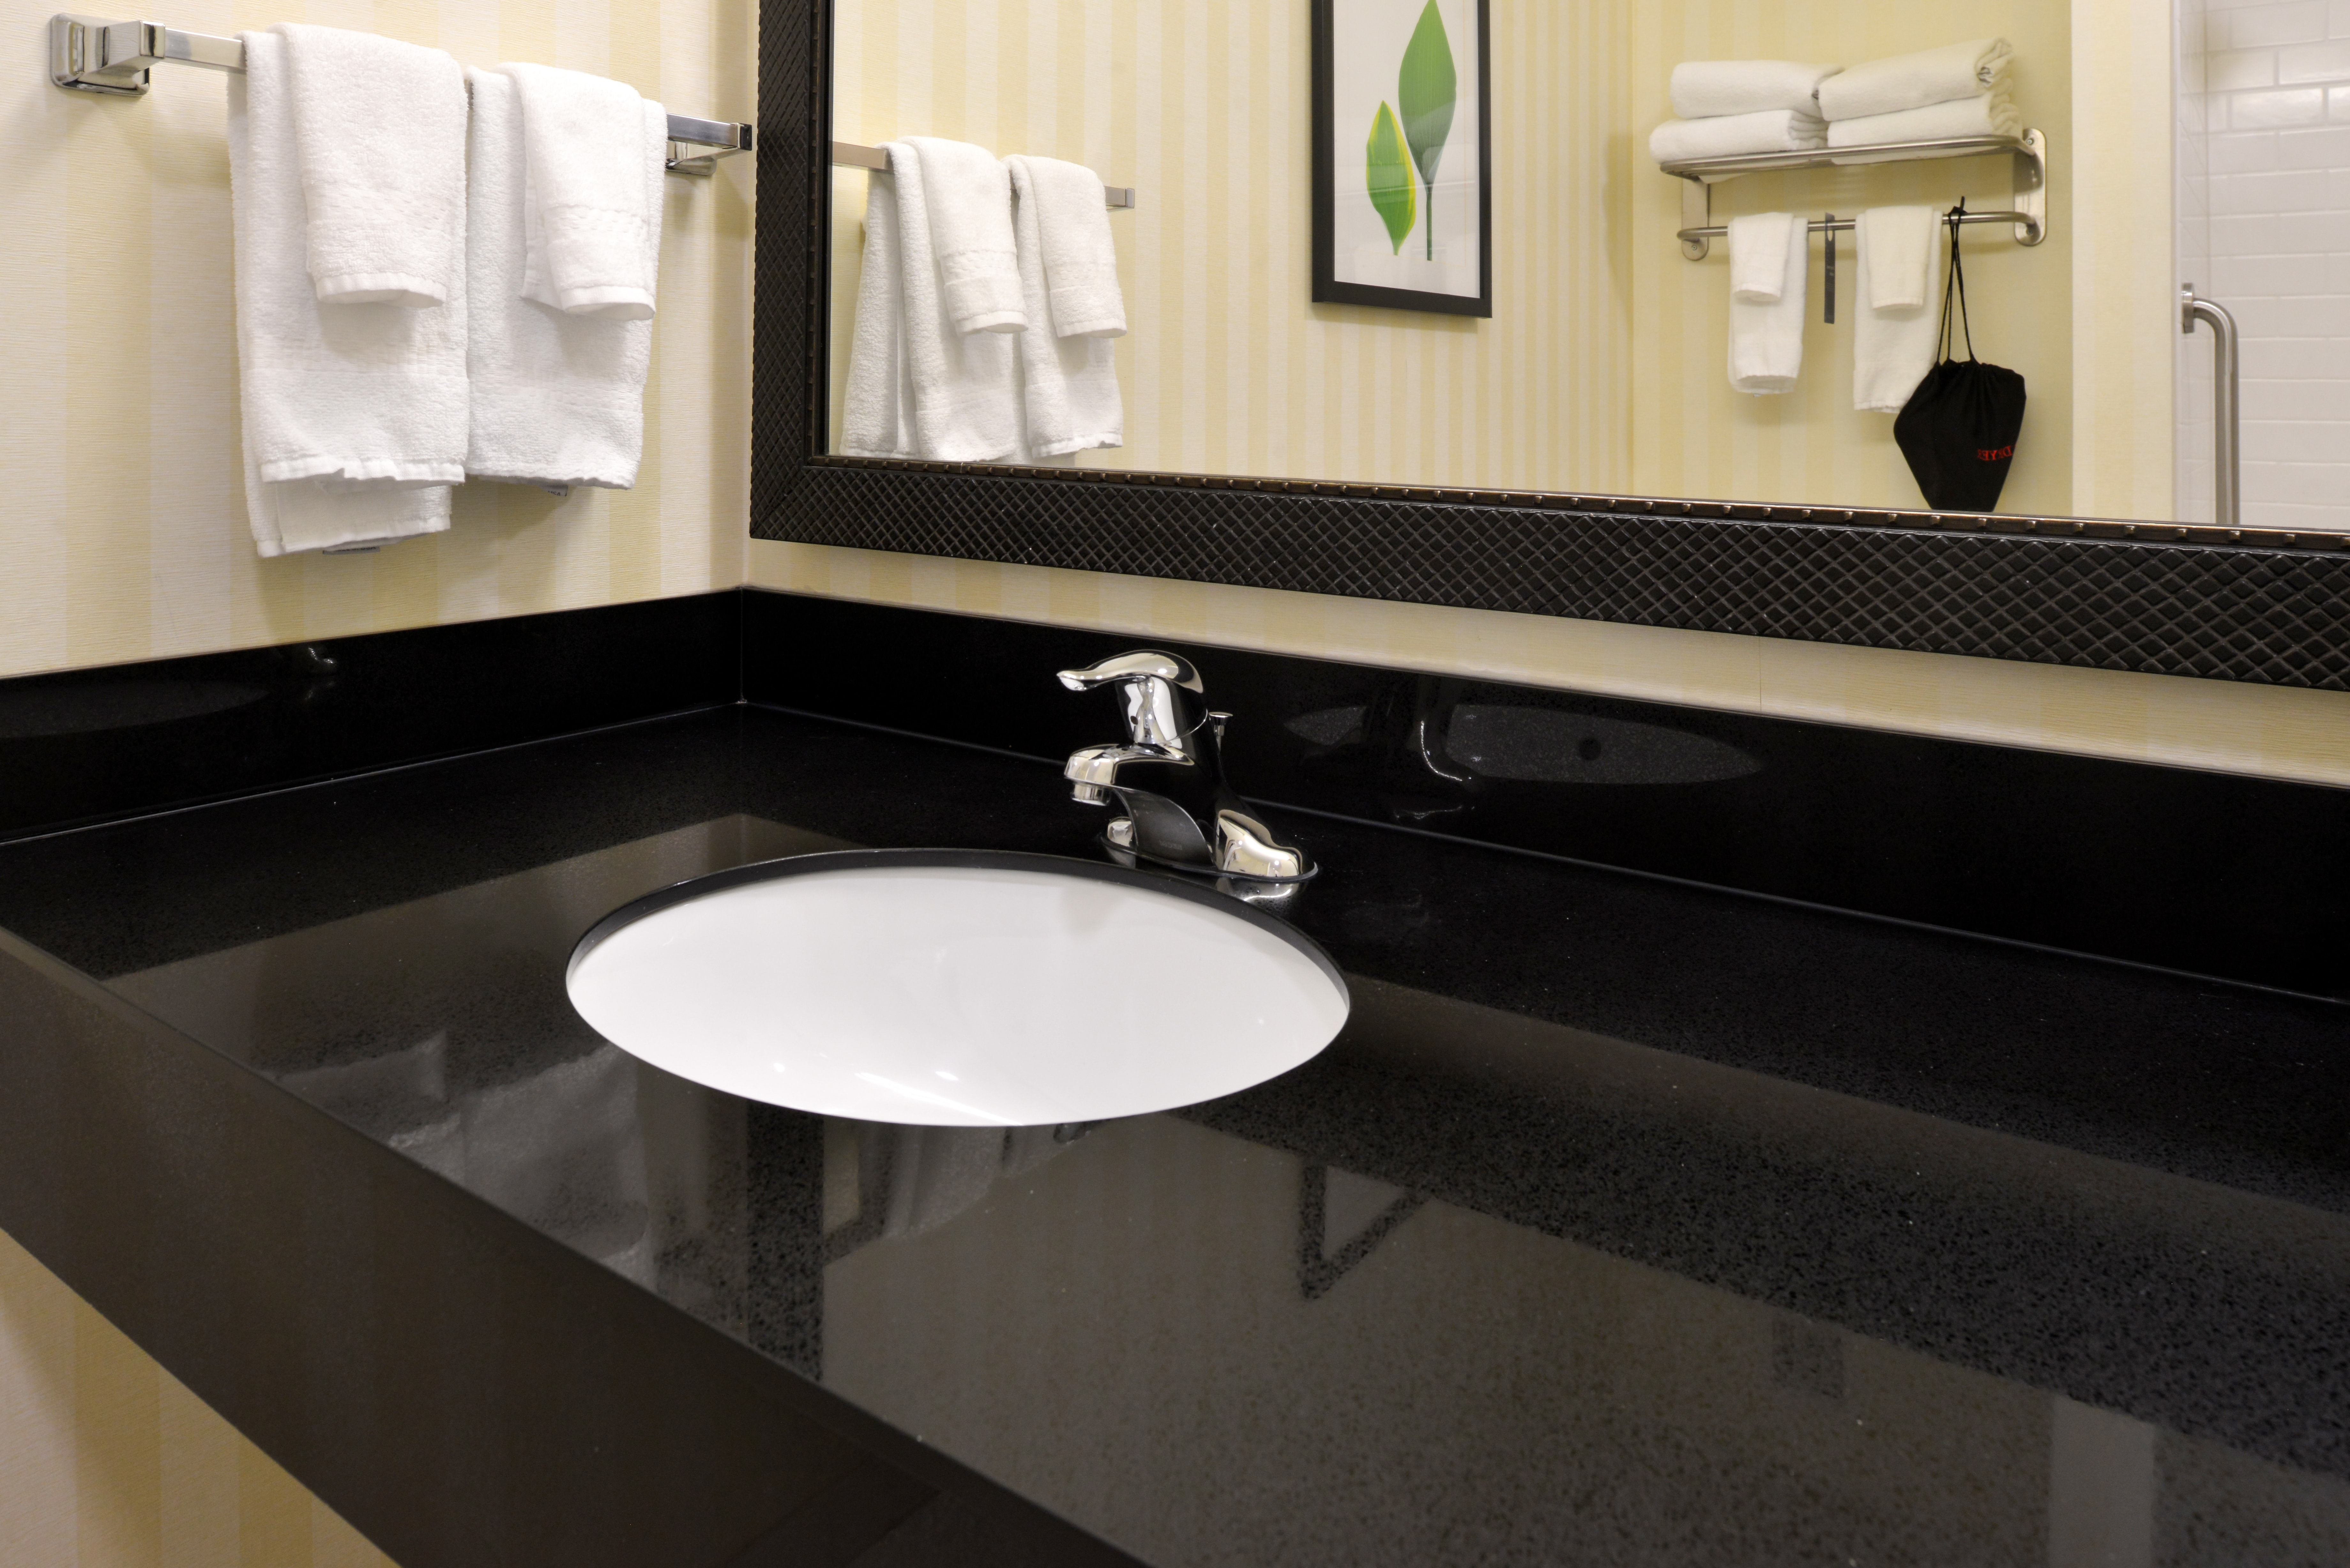 https://www.hotelsbyday.com/_data/default-hotel_image/3/15130/fis-cidcr-bathroom5.jpg